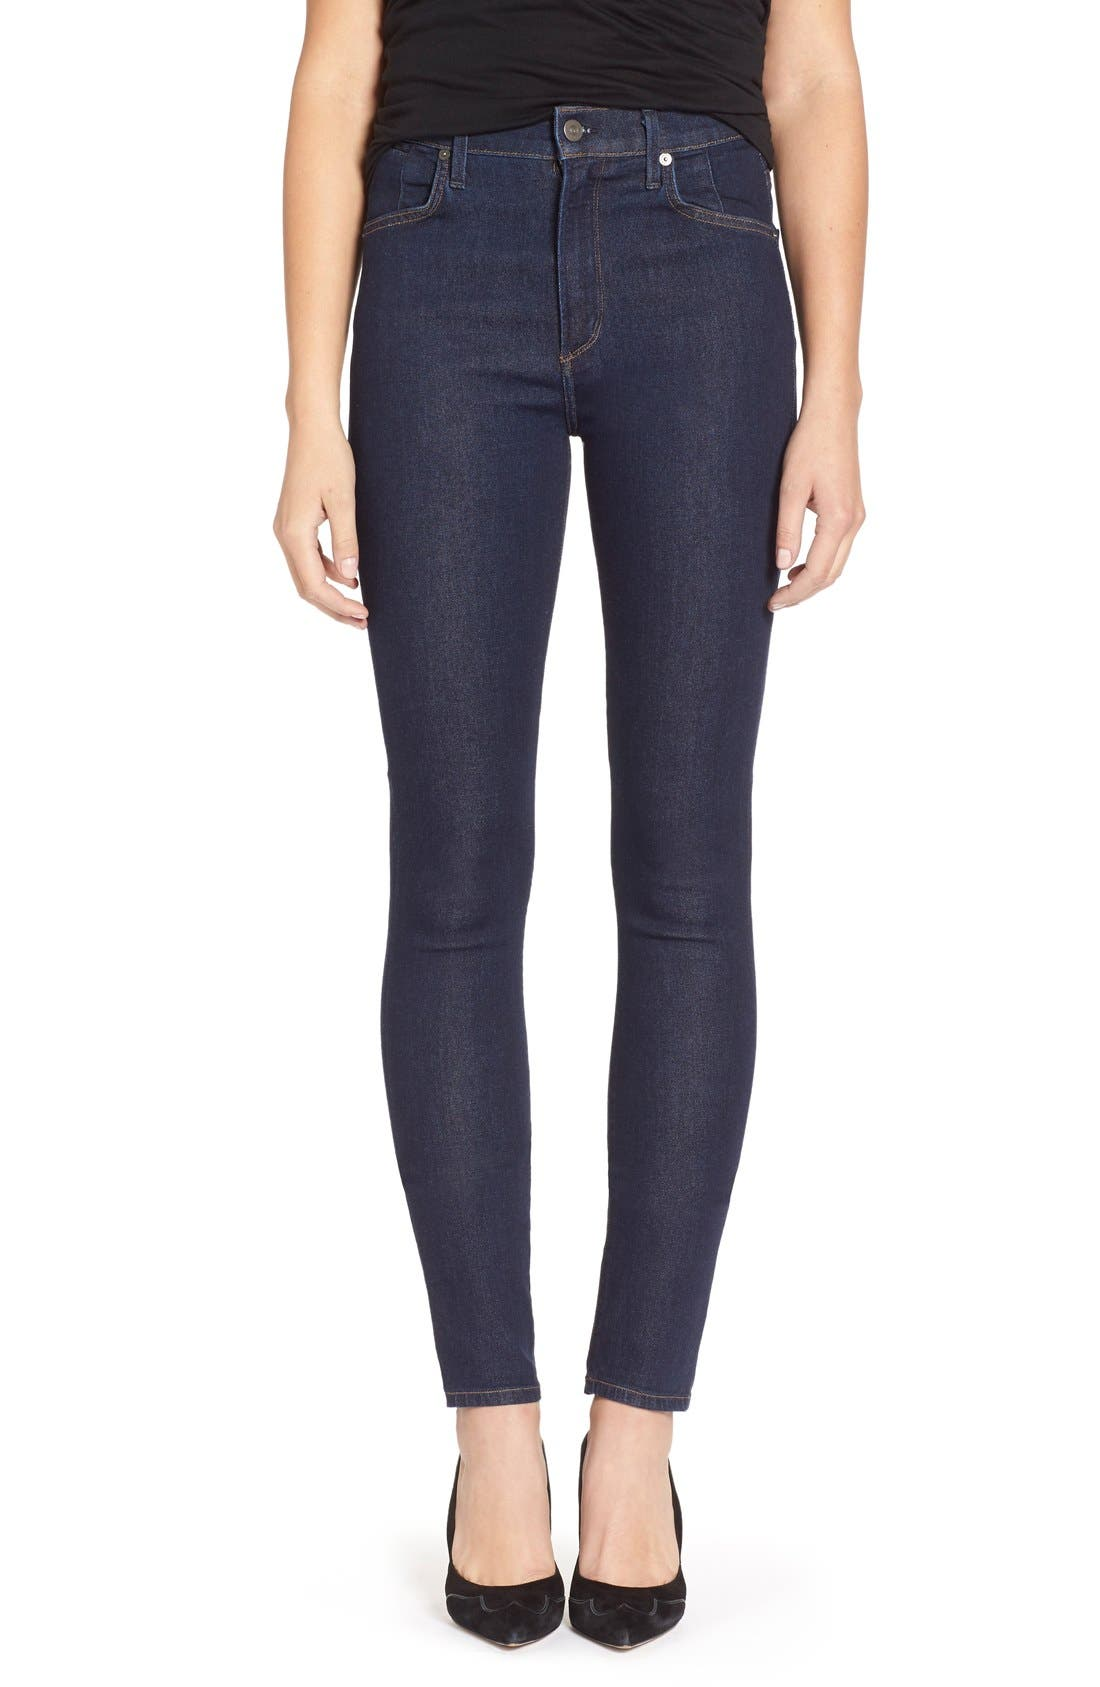 'Carlie' High Rise Skinny Jeans,                             Main thumbnail 1, color,                             406